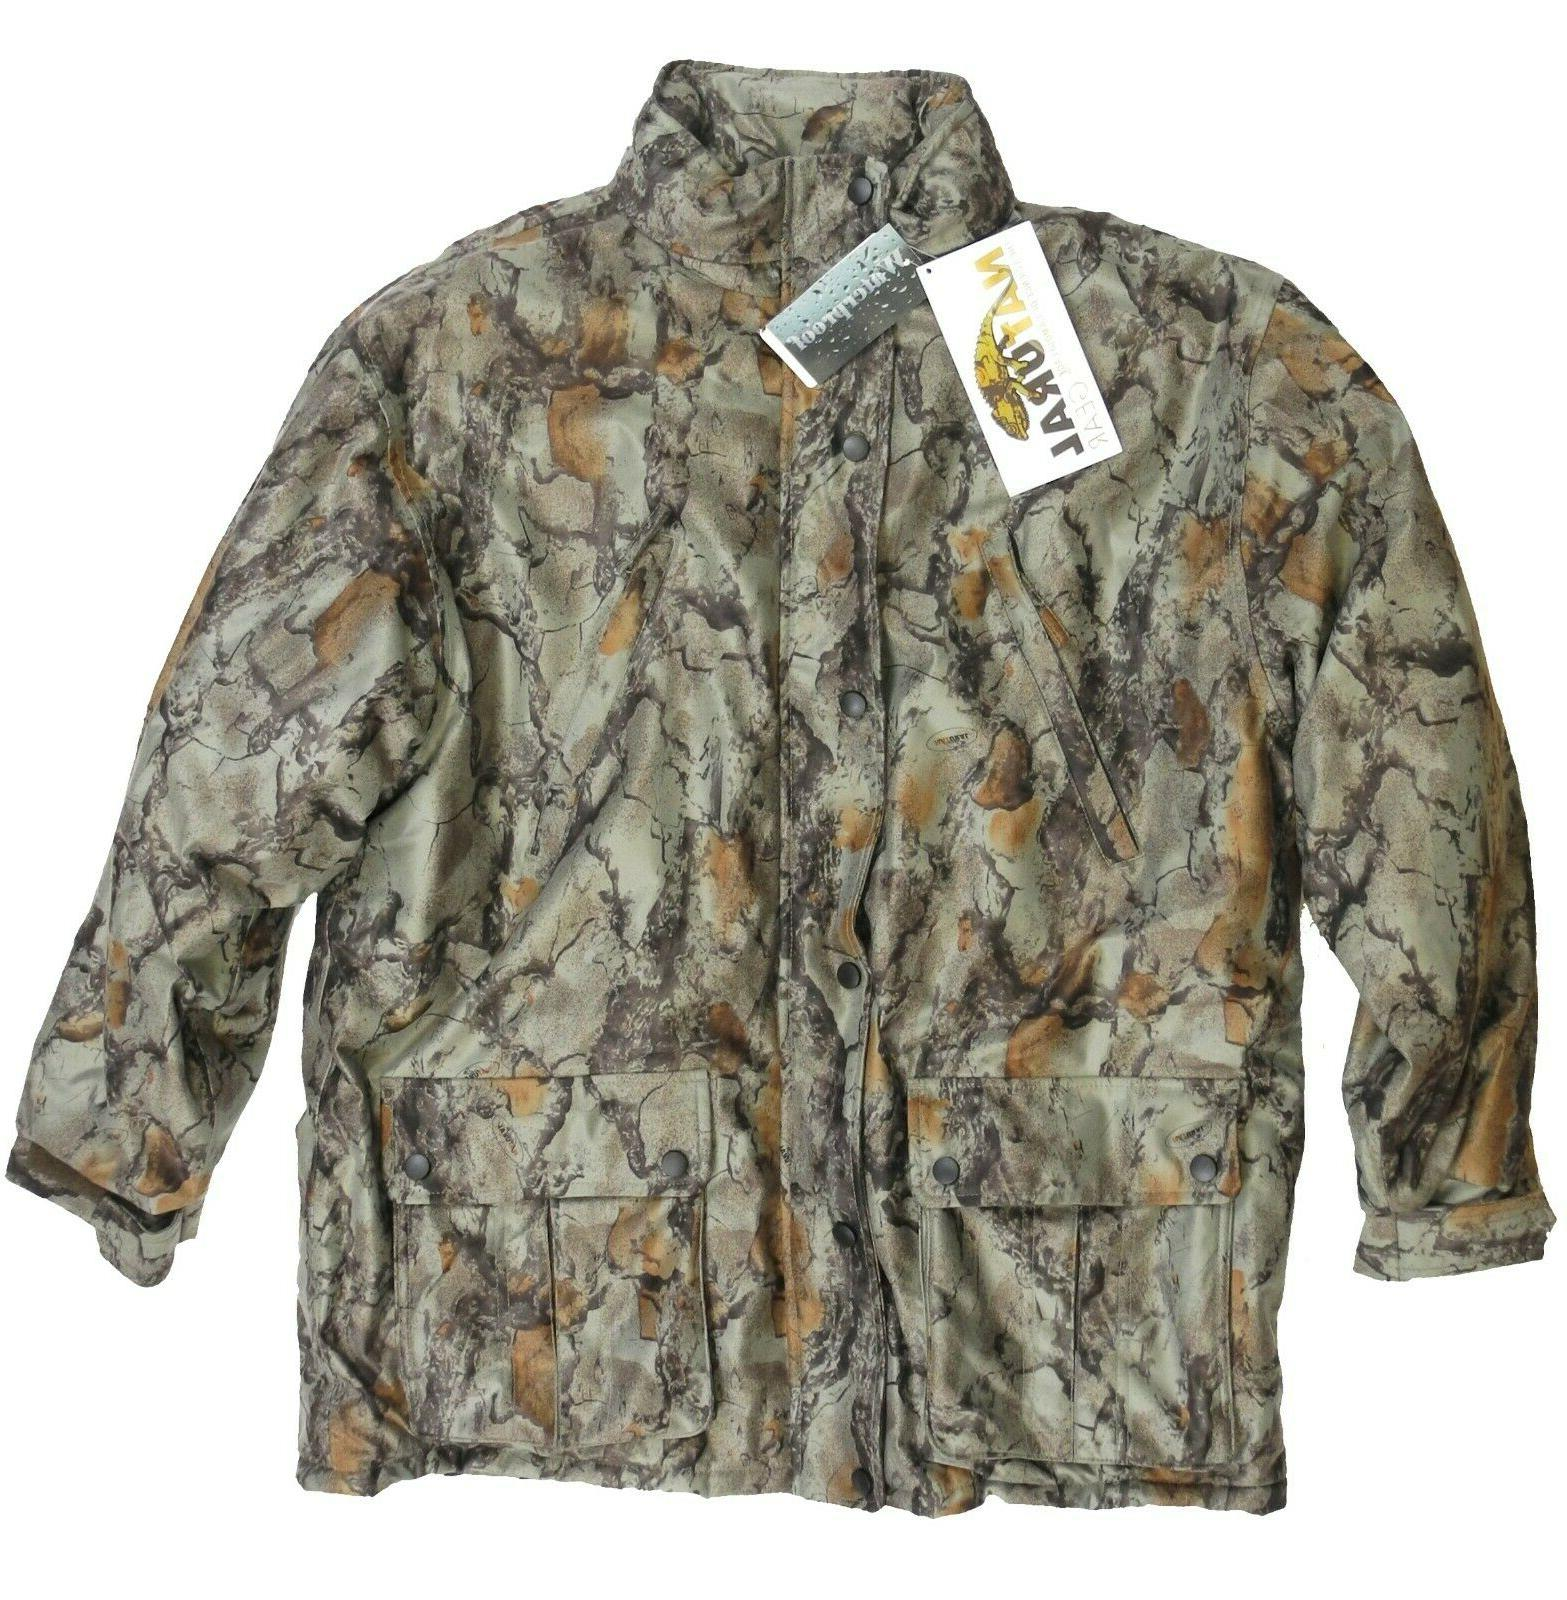 insulated parka xl new nwt camouflage hunting